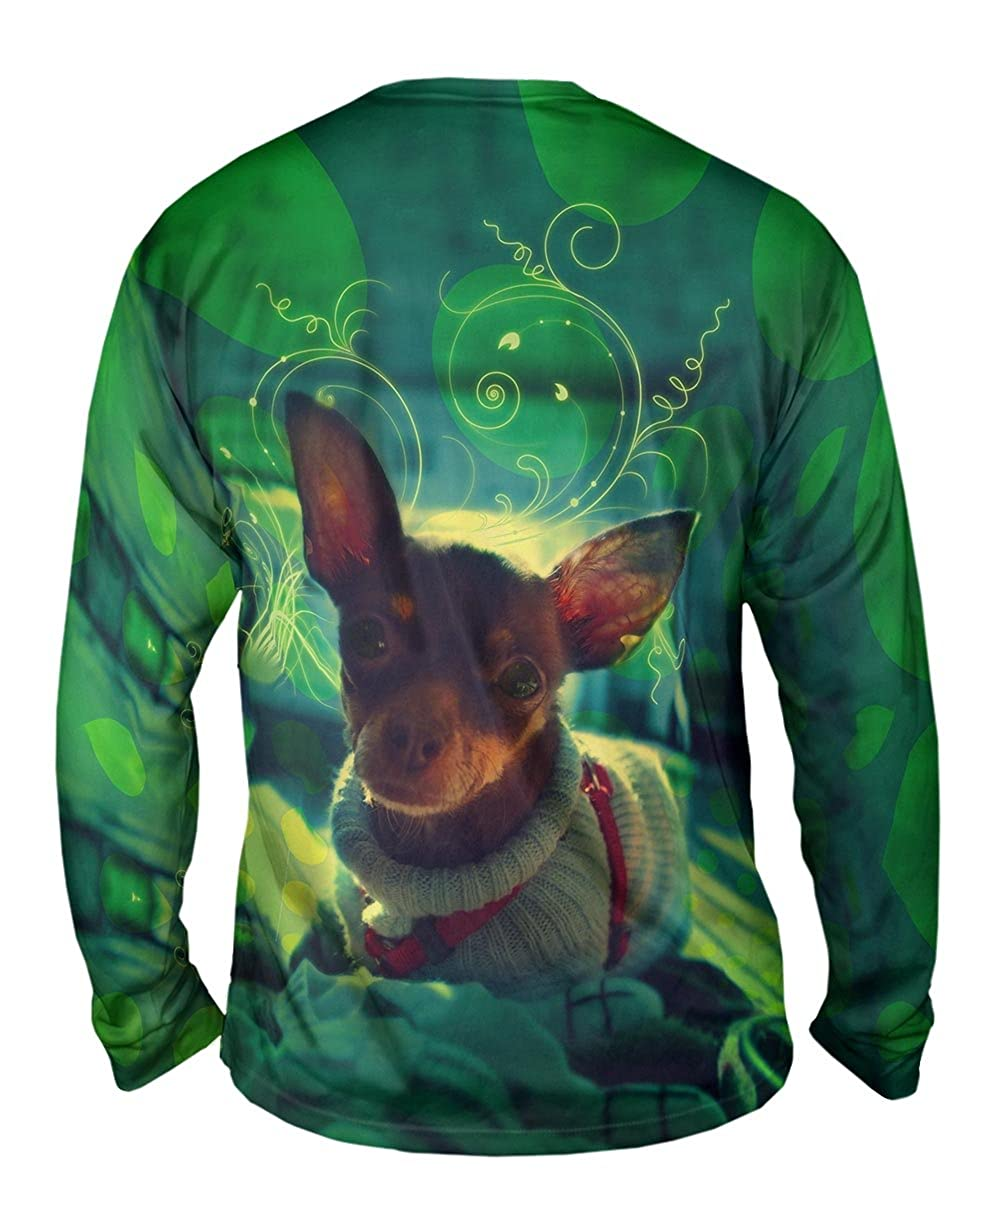 TShirt Mens Long Sleeve Cute Chihuahua Sweater Dog Yizzam